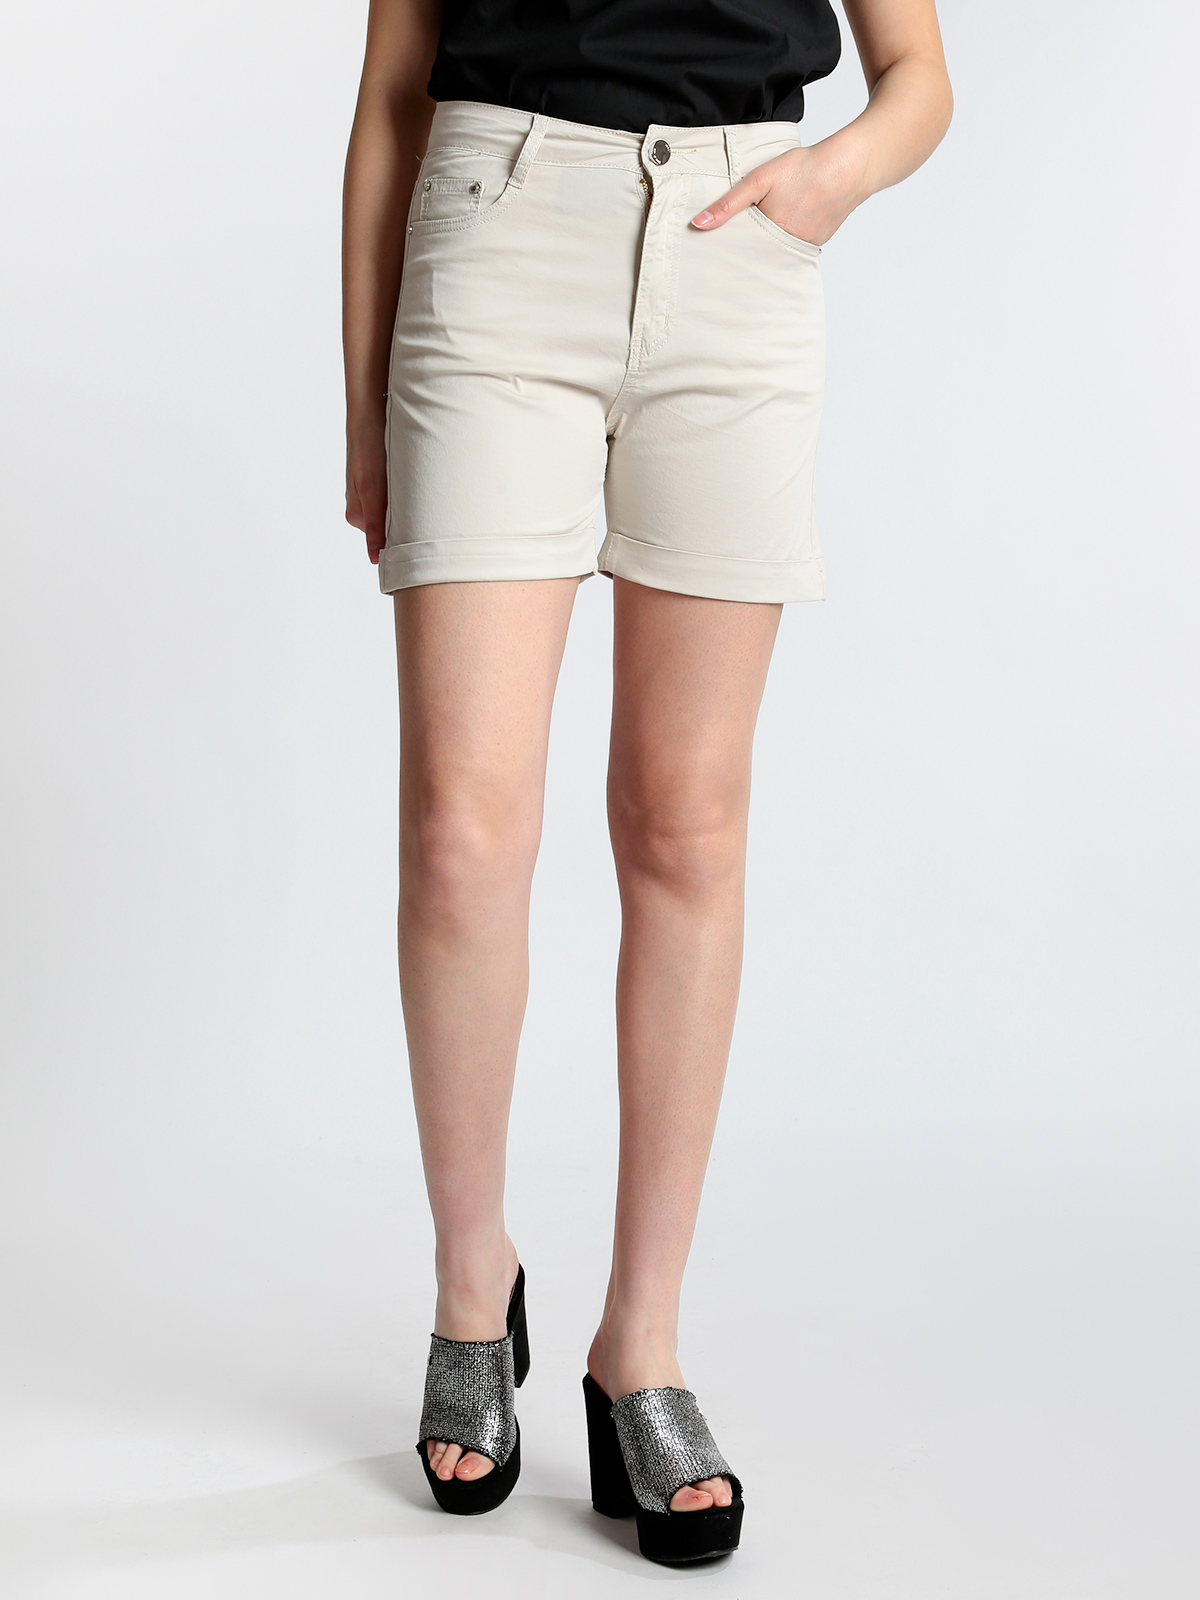 High Waist Shorts Cotton With Lapels